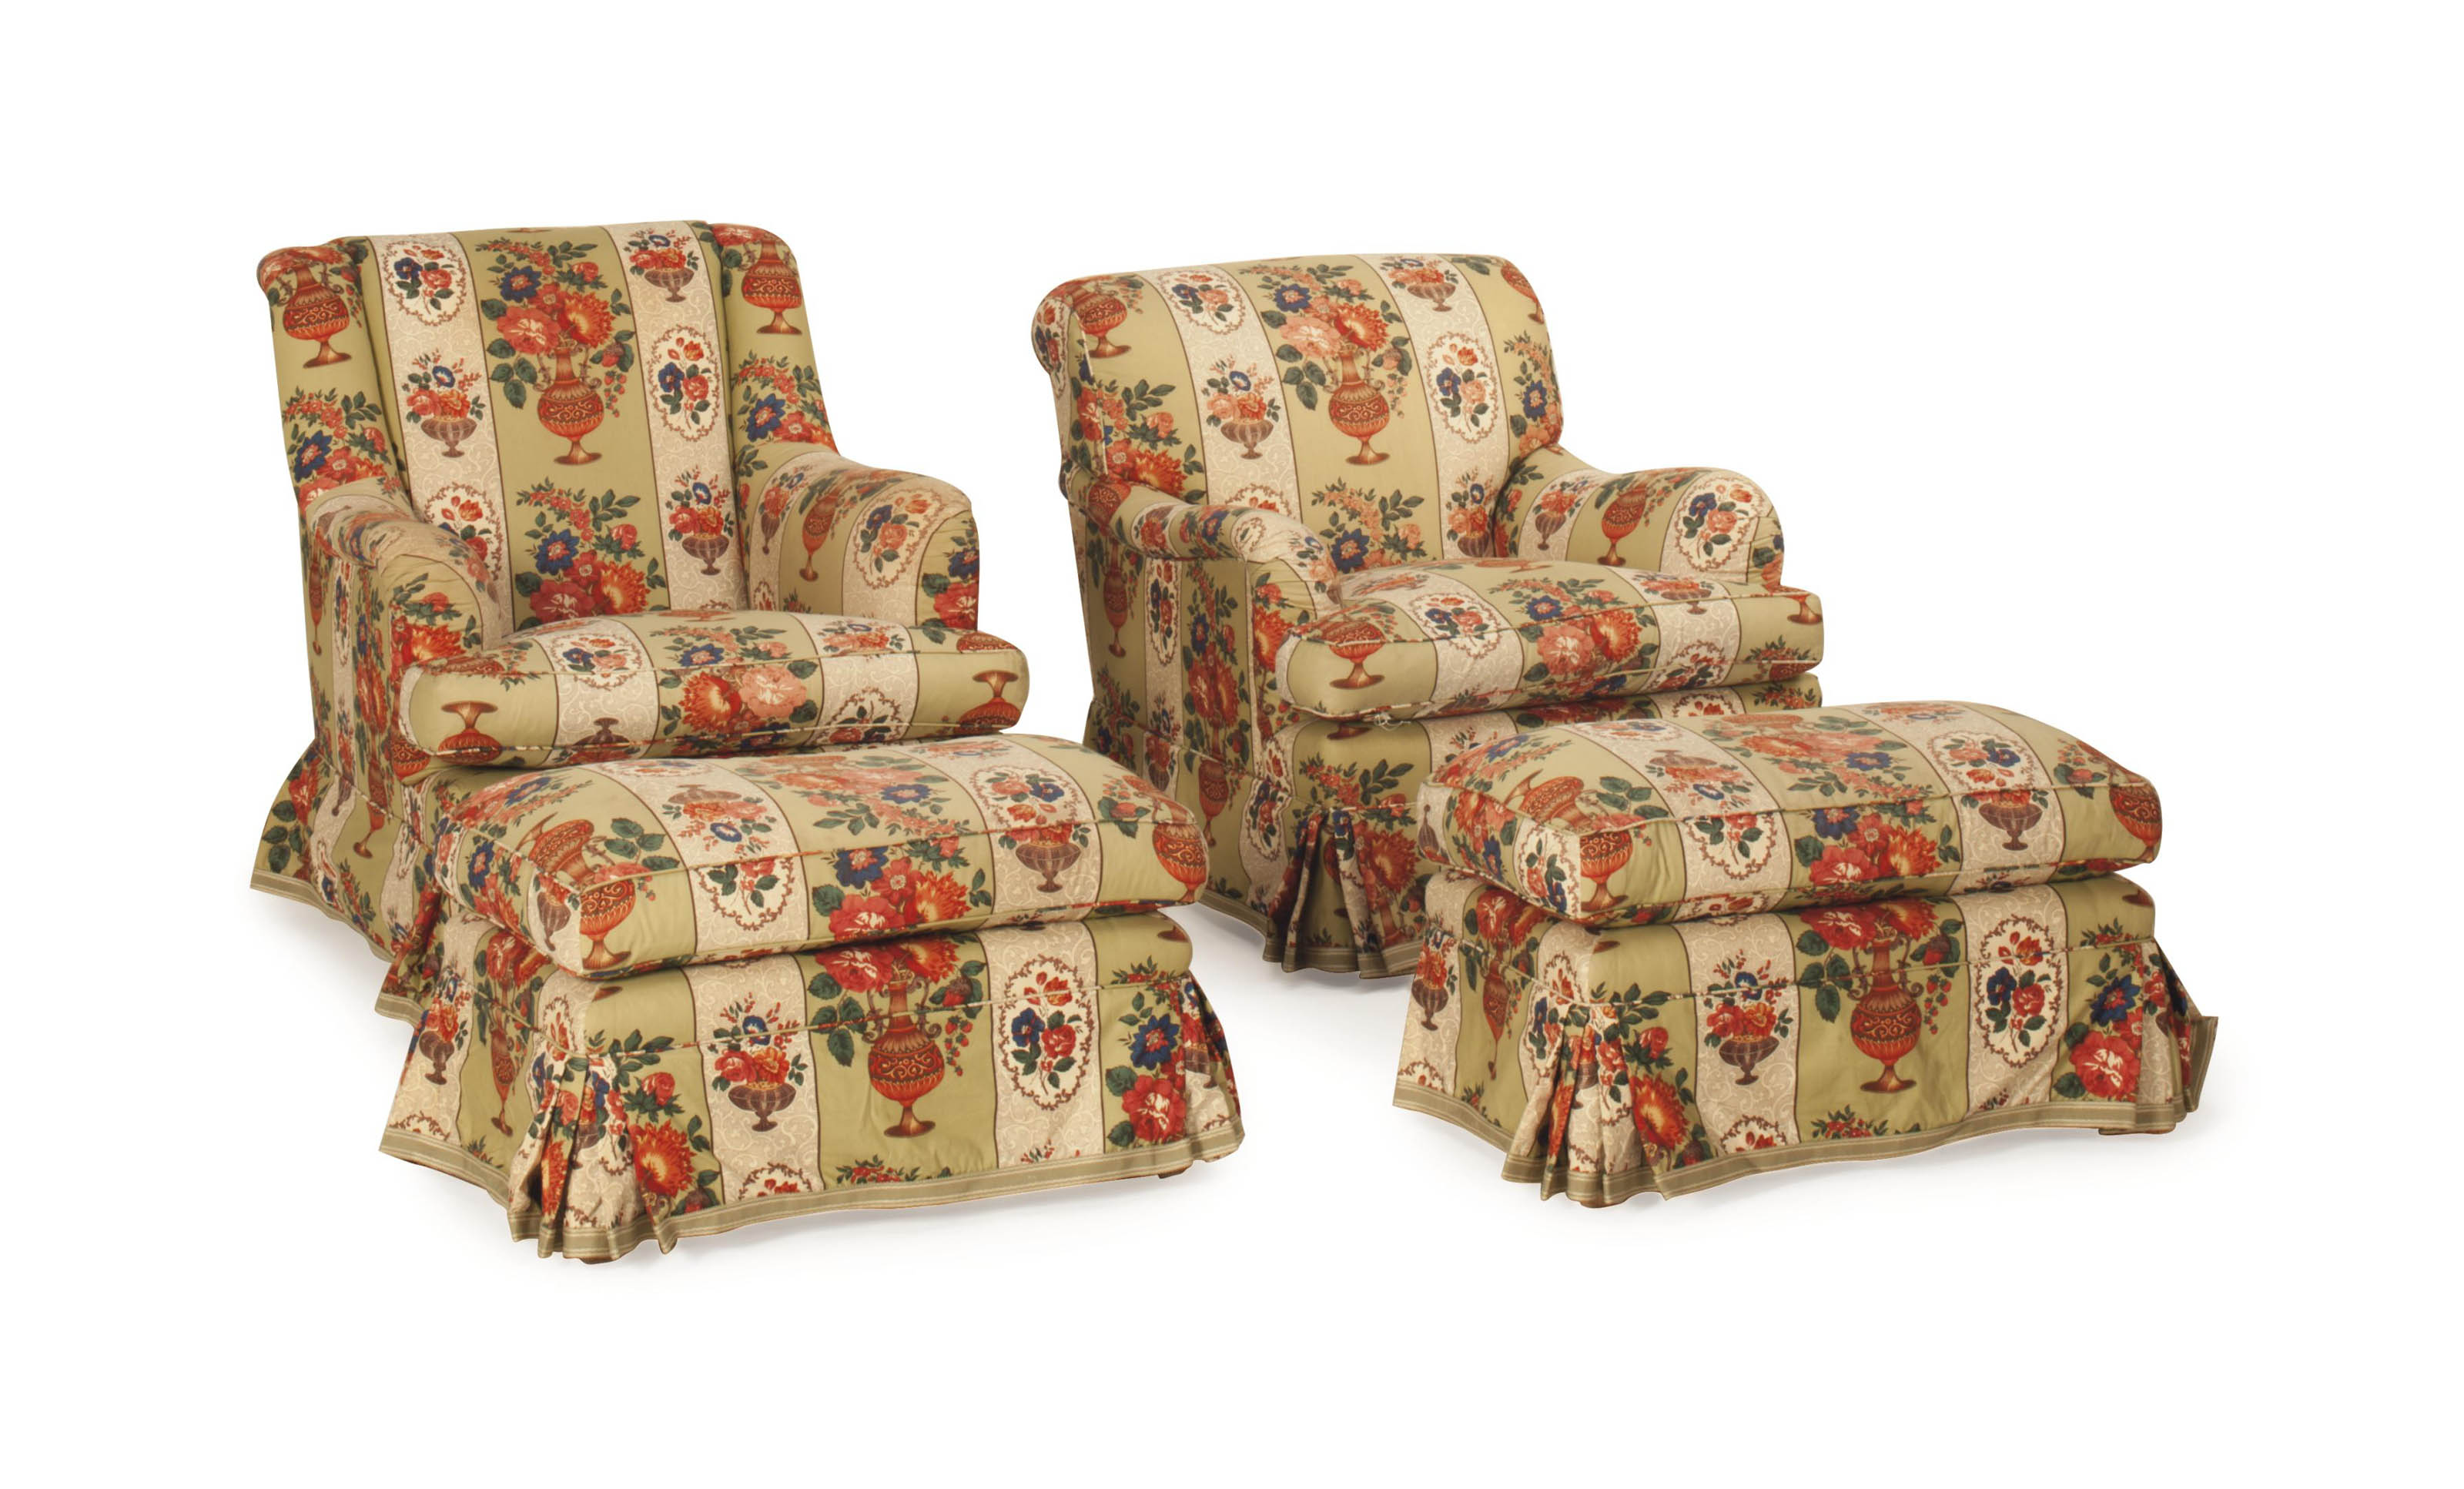 Lot 778  sc 1 st  Christieu0027s & TWO PAIRS OF FLORAL CHINTZ-UPHOLSTERED CLUB CHAIRS AND A PAIR OF ...